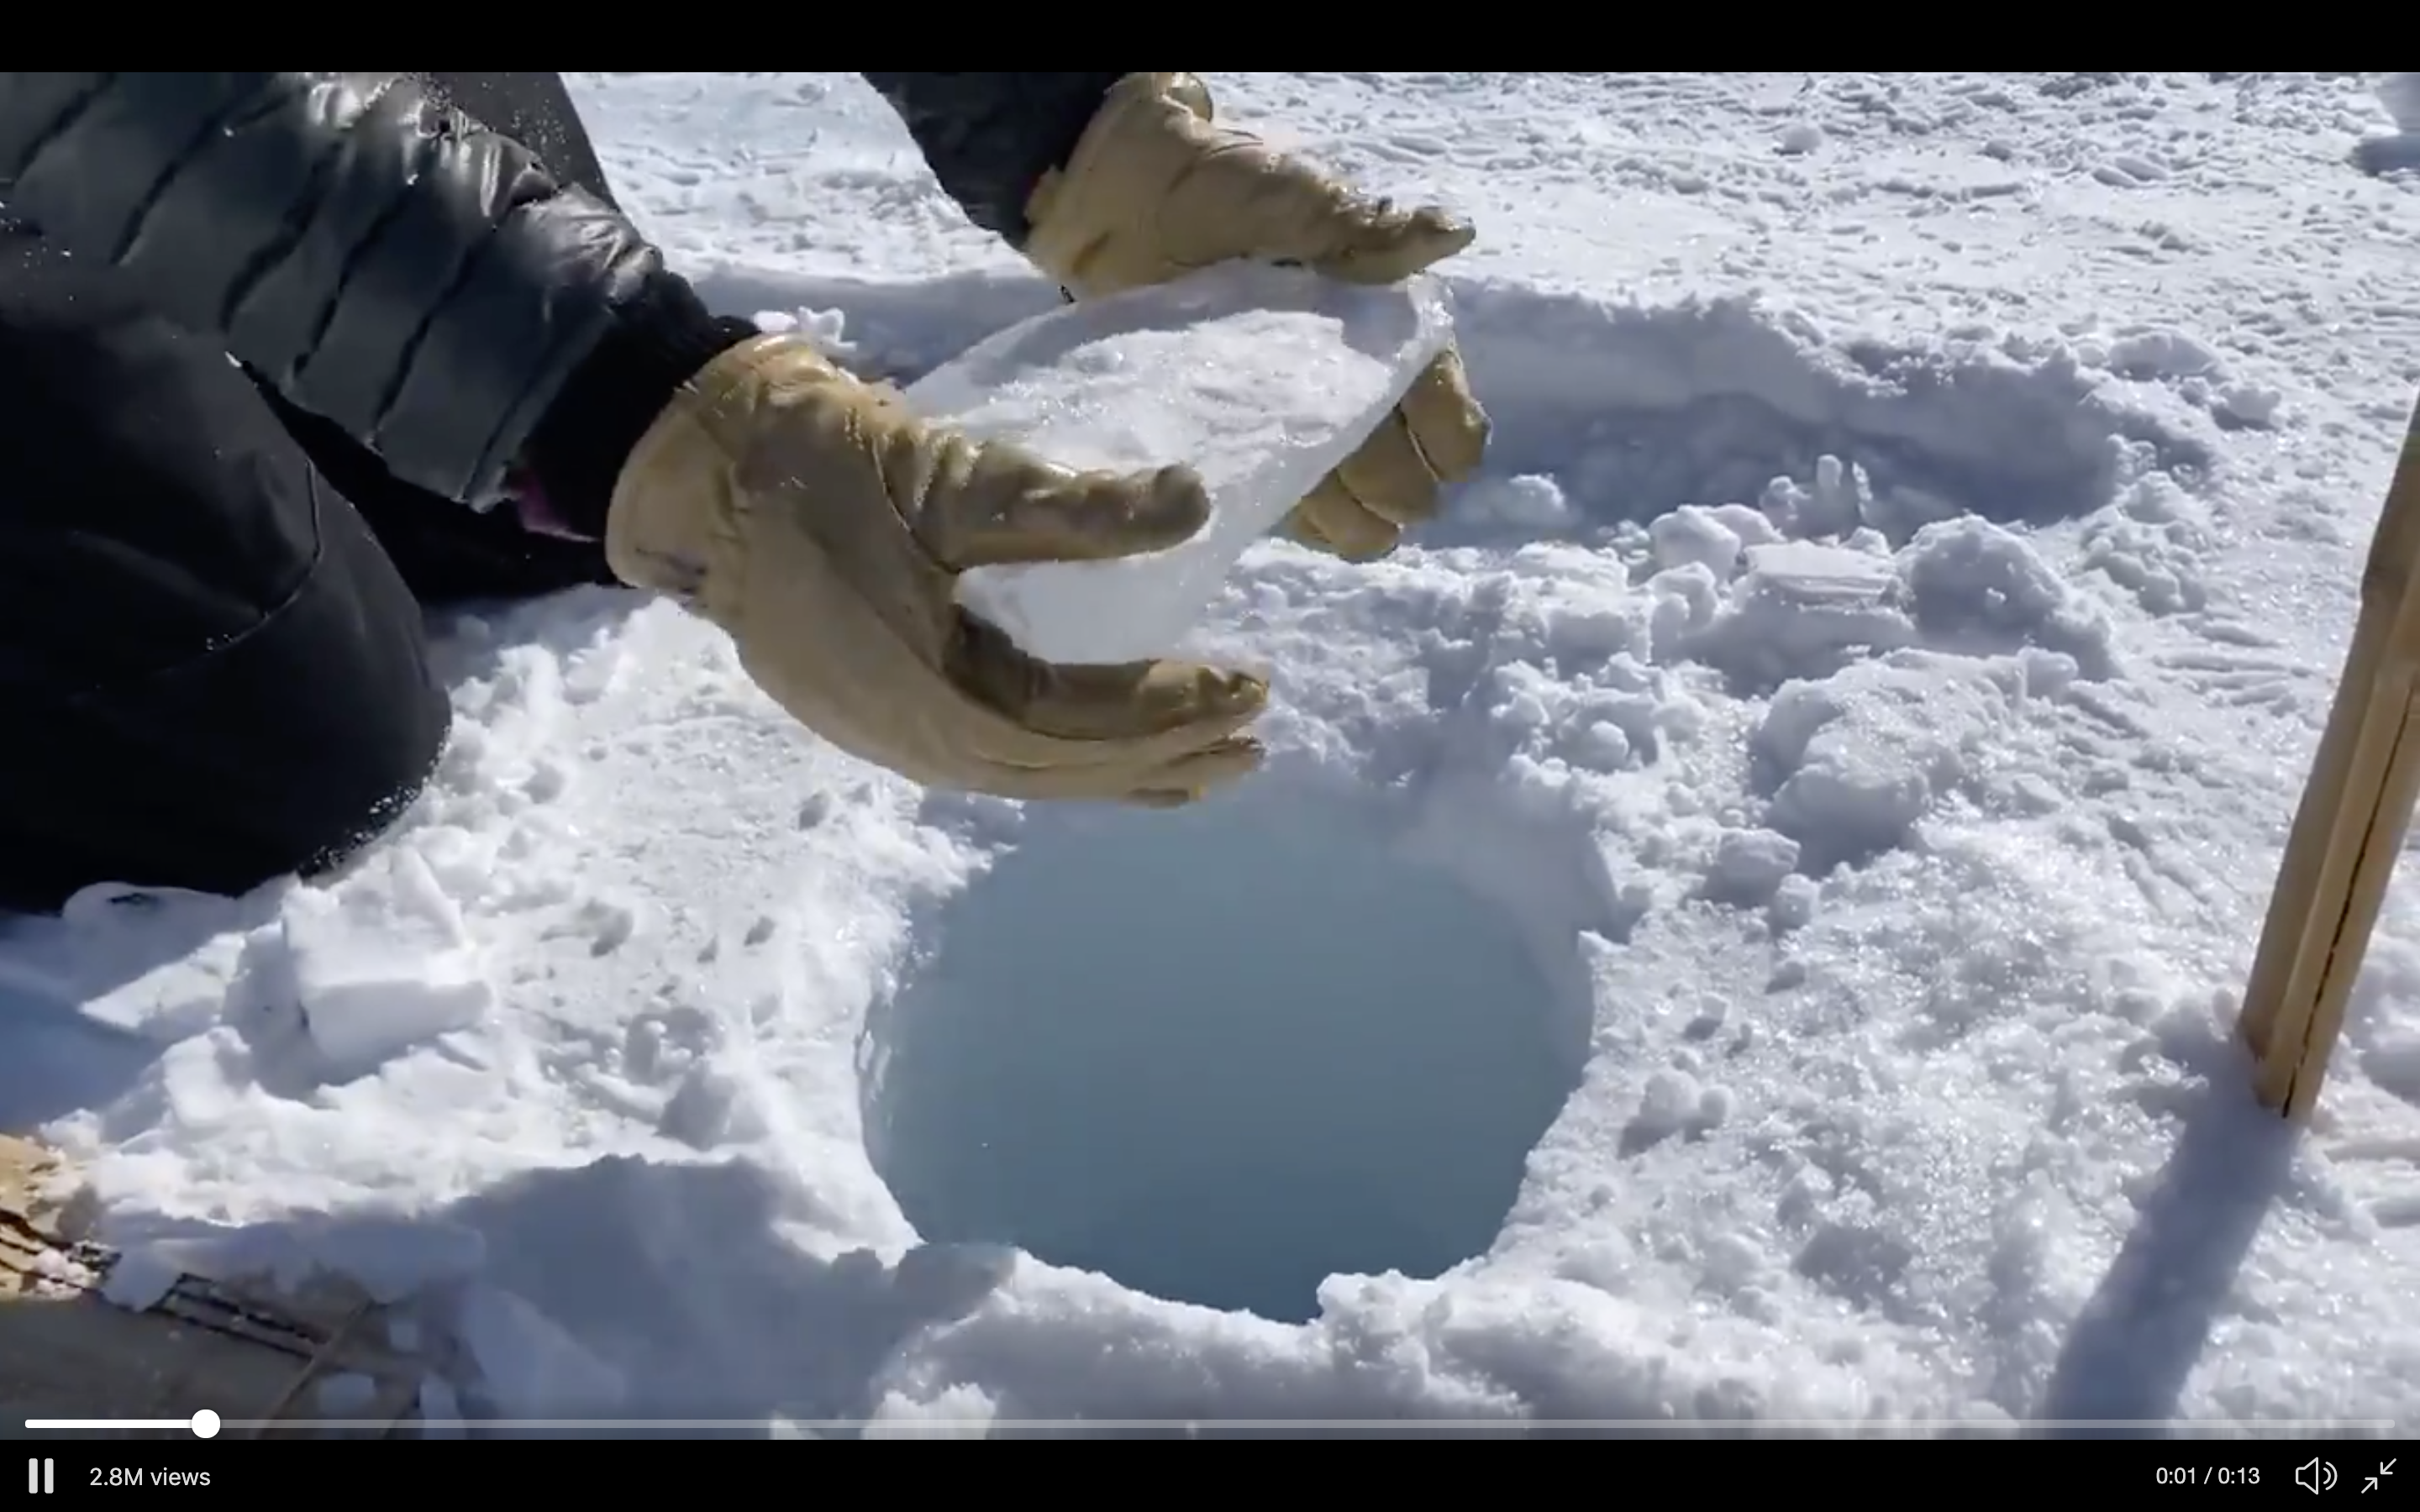 I Can't Stop Watching This Ice Chunk Fall Down an Absurdly Deep Hole